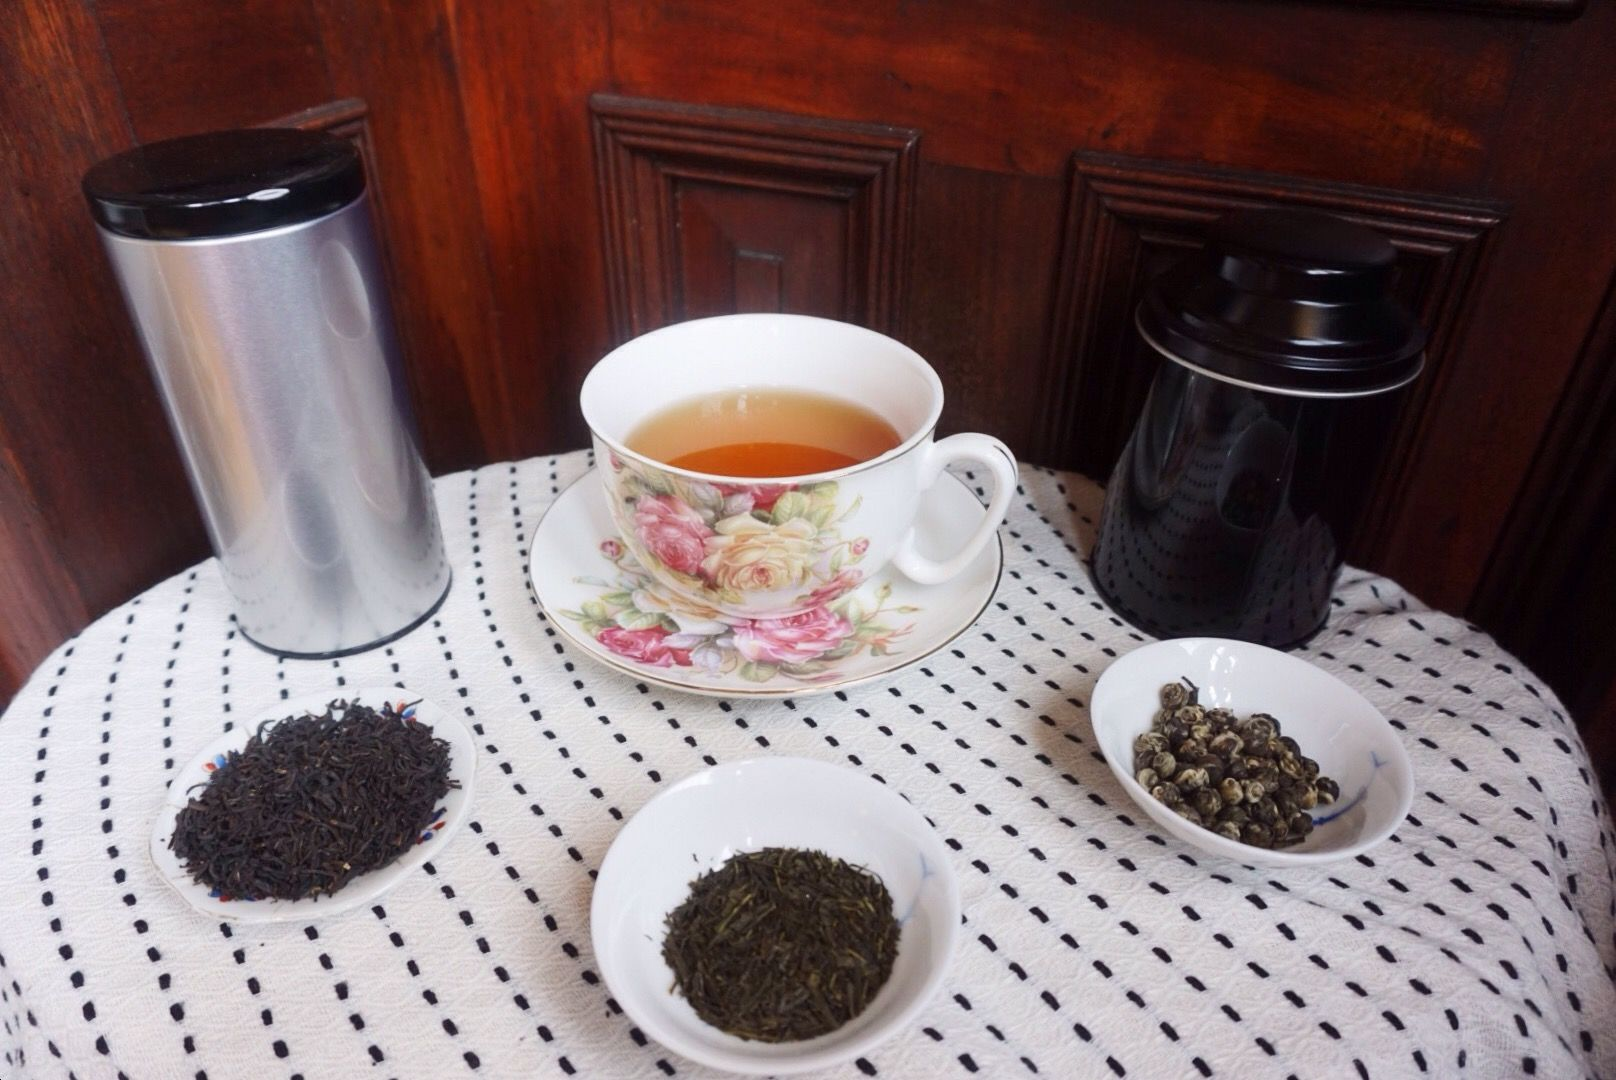 Part of Kat's New Year resolution is to make sure she doesn't waste any tea. Teas don't last forever dearies, and of course it tastes best when it's fresh. As Kat was cleaning her cupboards after t...